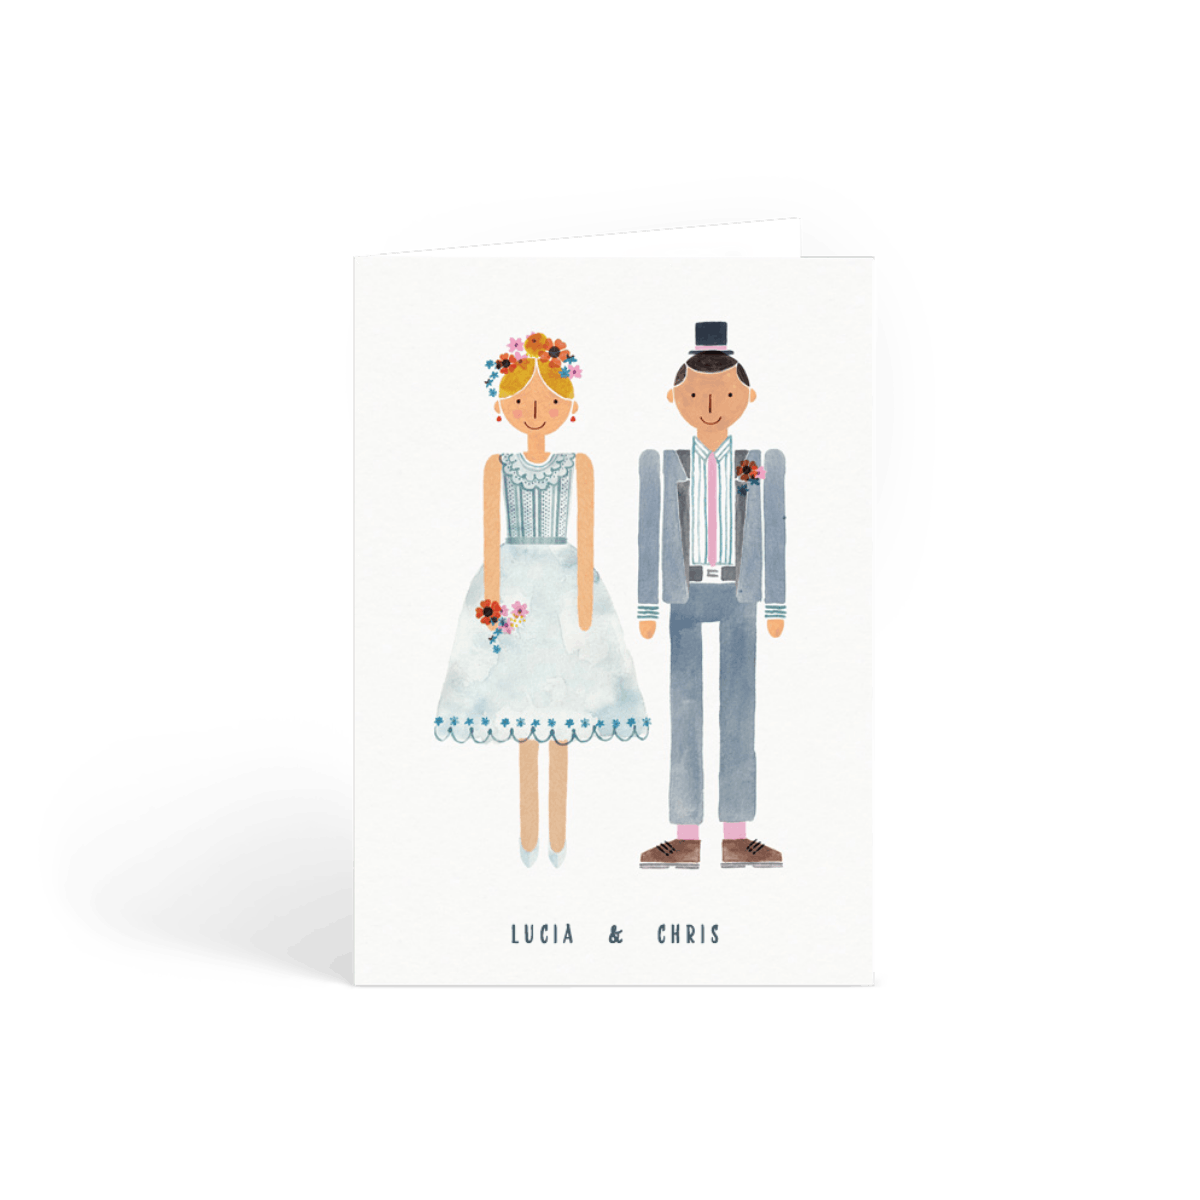 Https%3a%2f%2fwww.papier.com%2fproduct image%2f6042%2f2%2fwedding couple 1575 front 1542711605.png?ixlib=rb 1.1